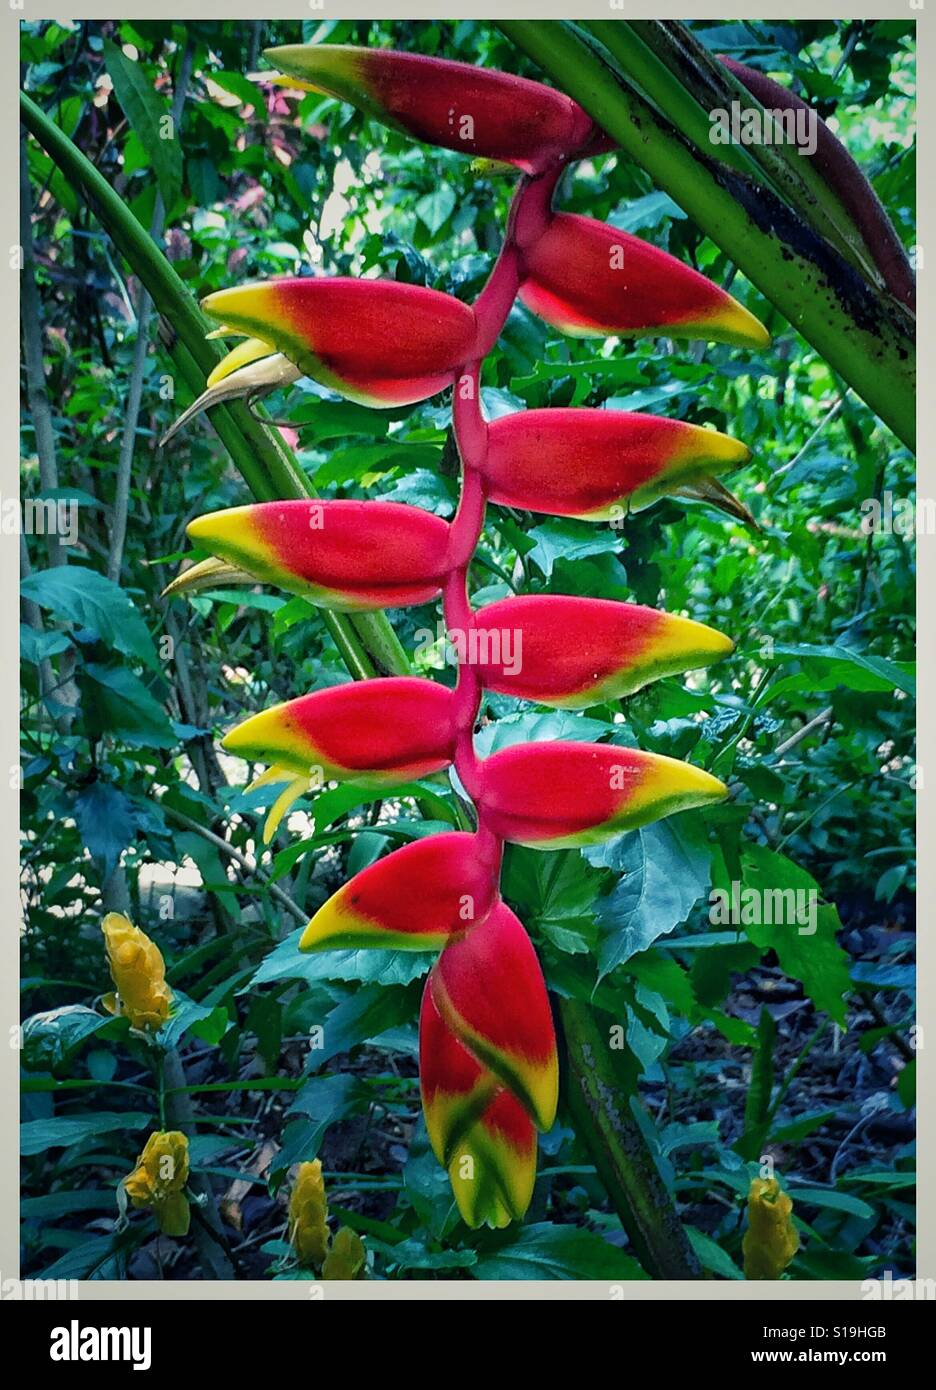 Vibrant red and yellow tropical plant stands out against green leaf background, Heliconia rostrata (hanging lobster - Stock Image